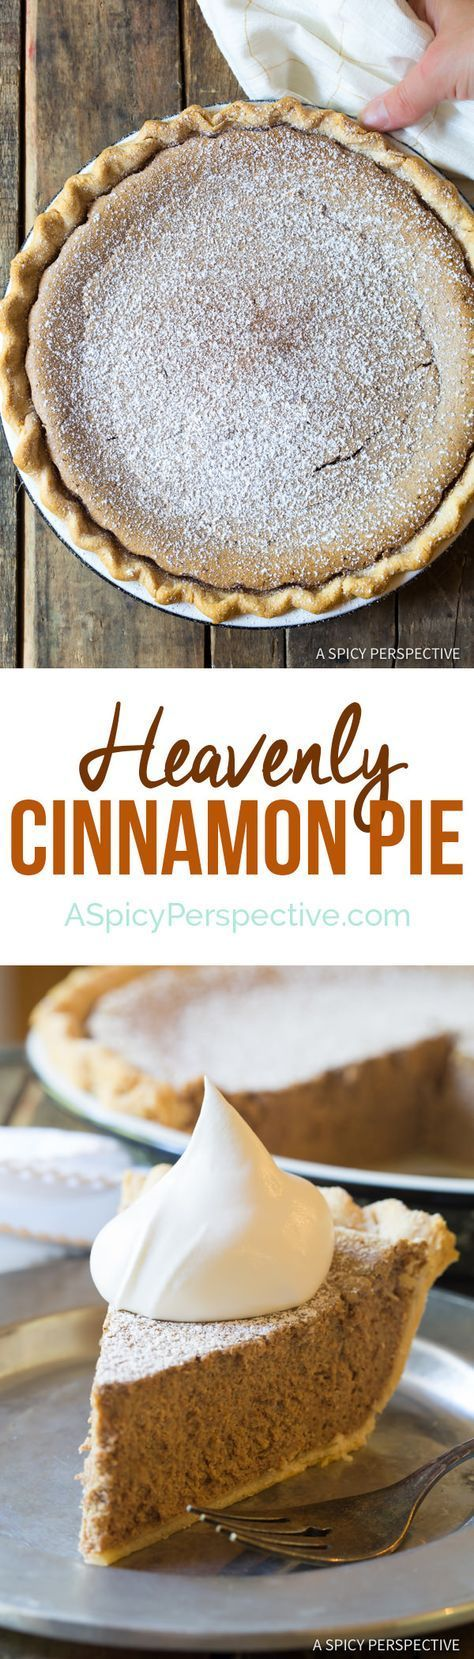 The Perfect Cinnamon Pie Recipe | http://ASpicyPerspective.com